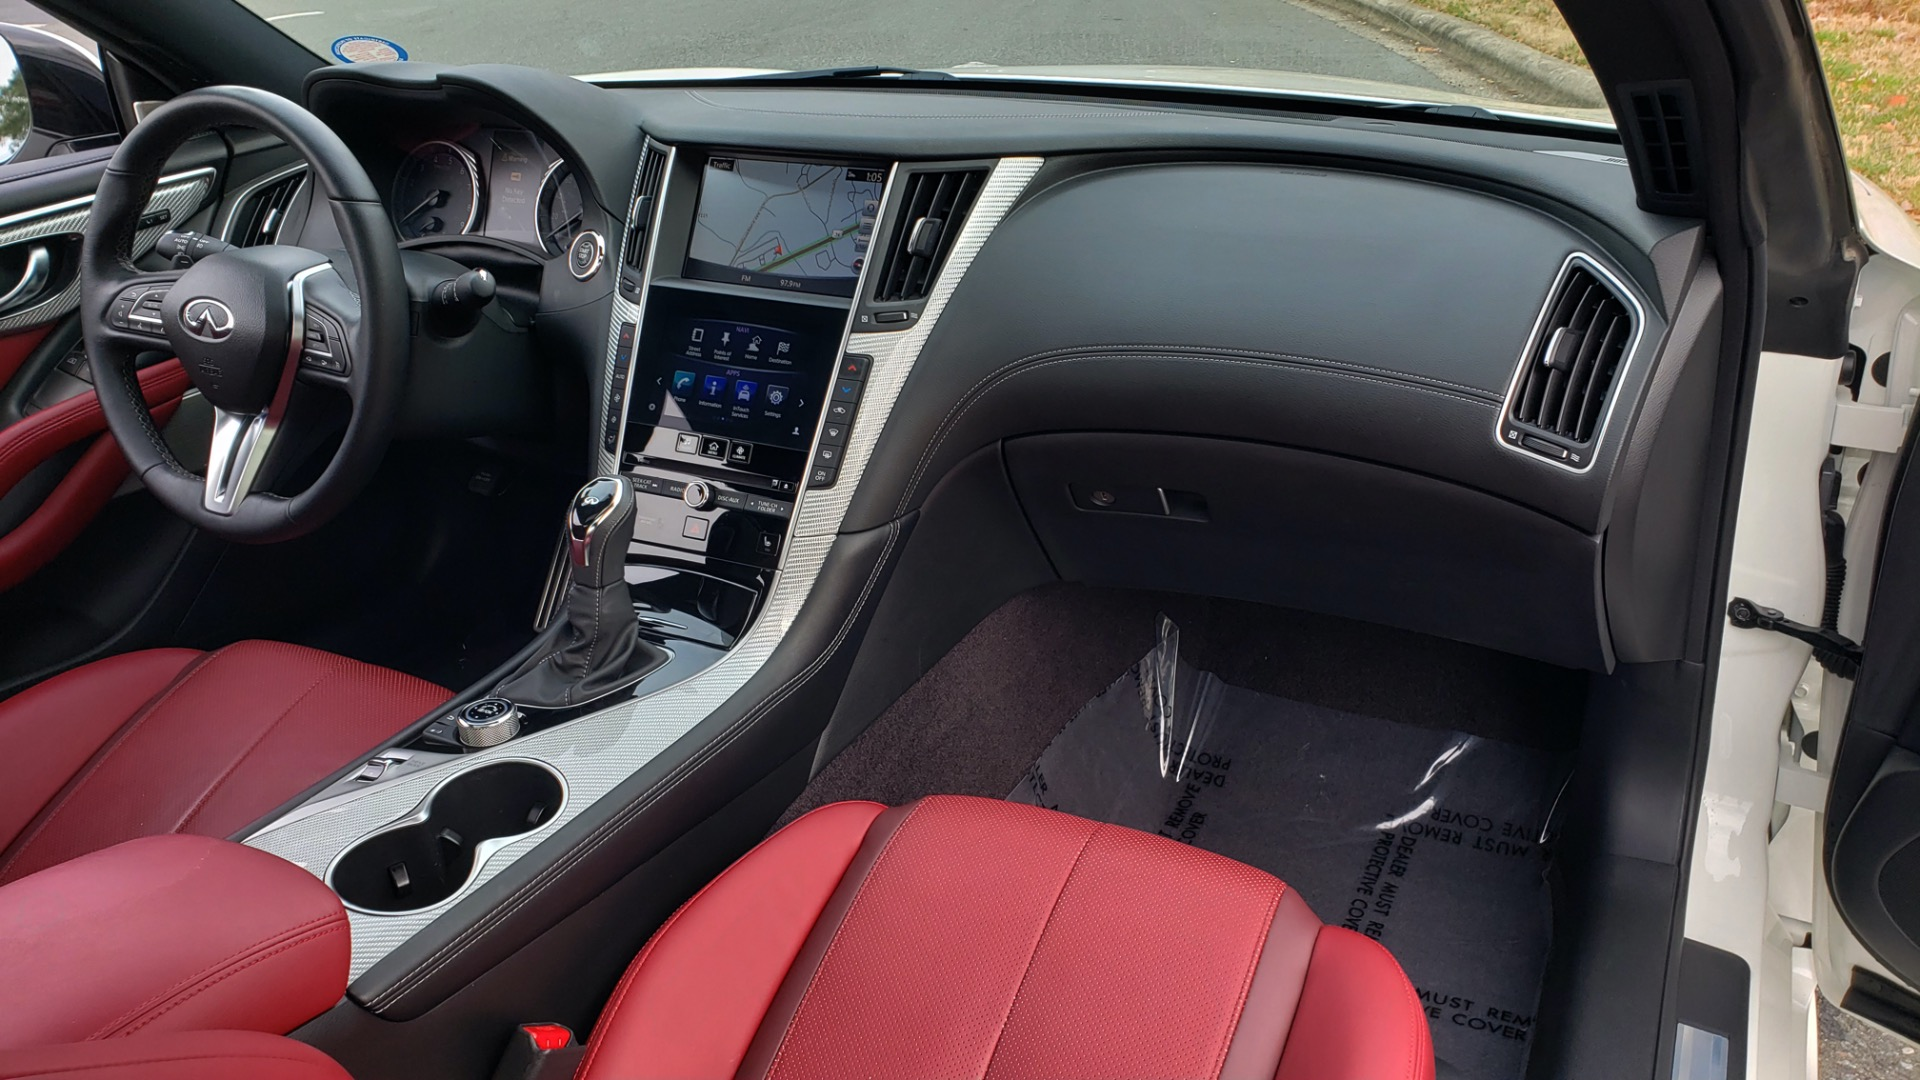 Used 2018 Infiniti Q60 RED SPORT 400 / SENSORY PKG / SUNROOF / NAV / REARVIEW for sale Sold at Formula Imports in Charlotte NC 28227 70